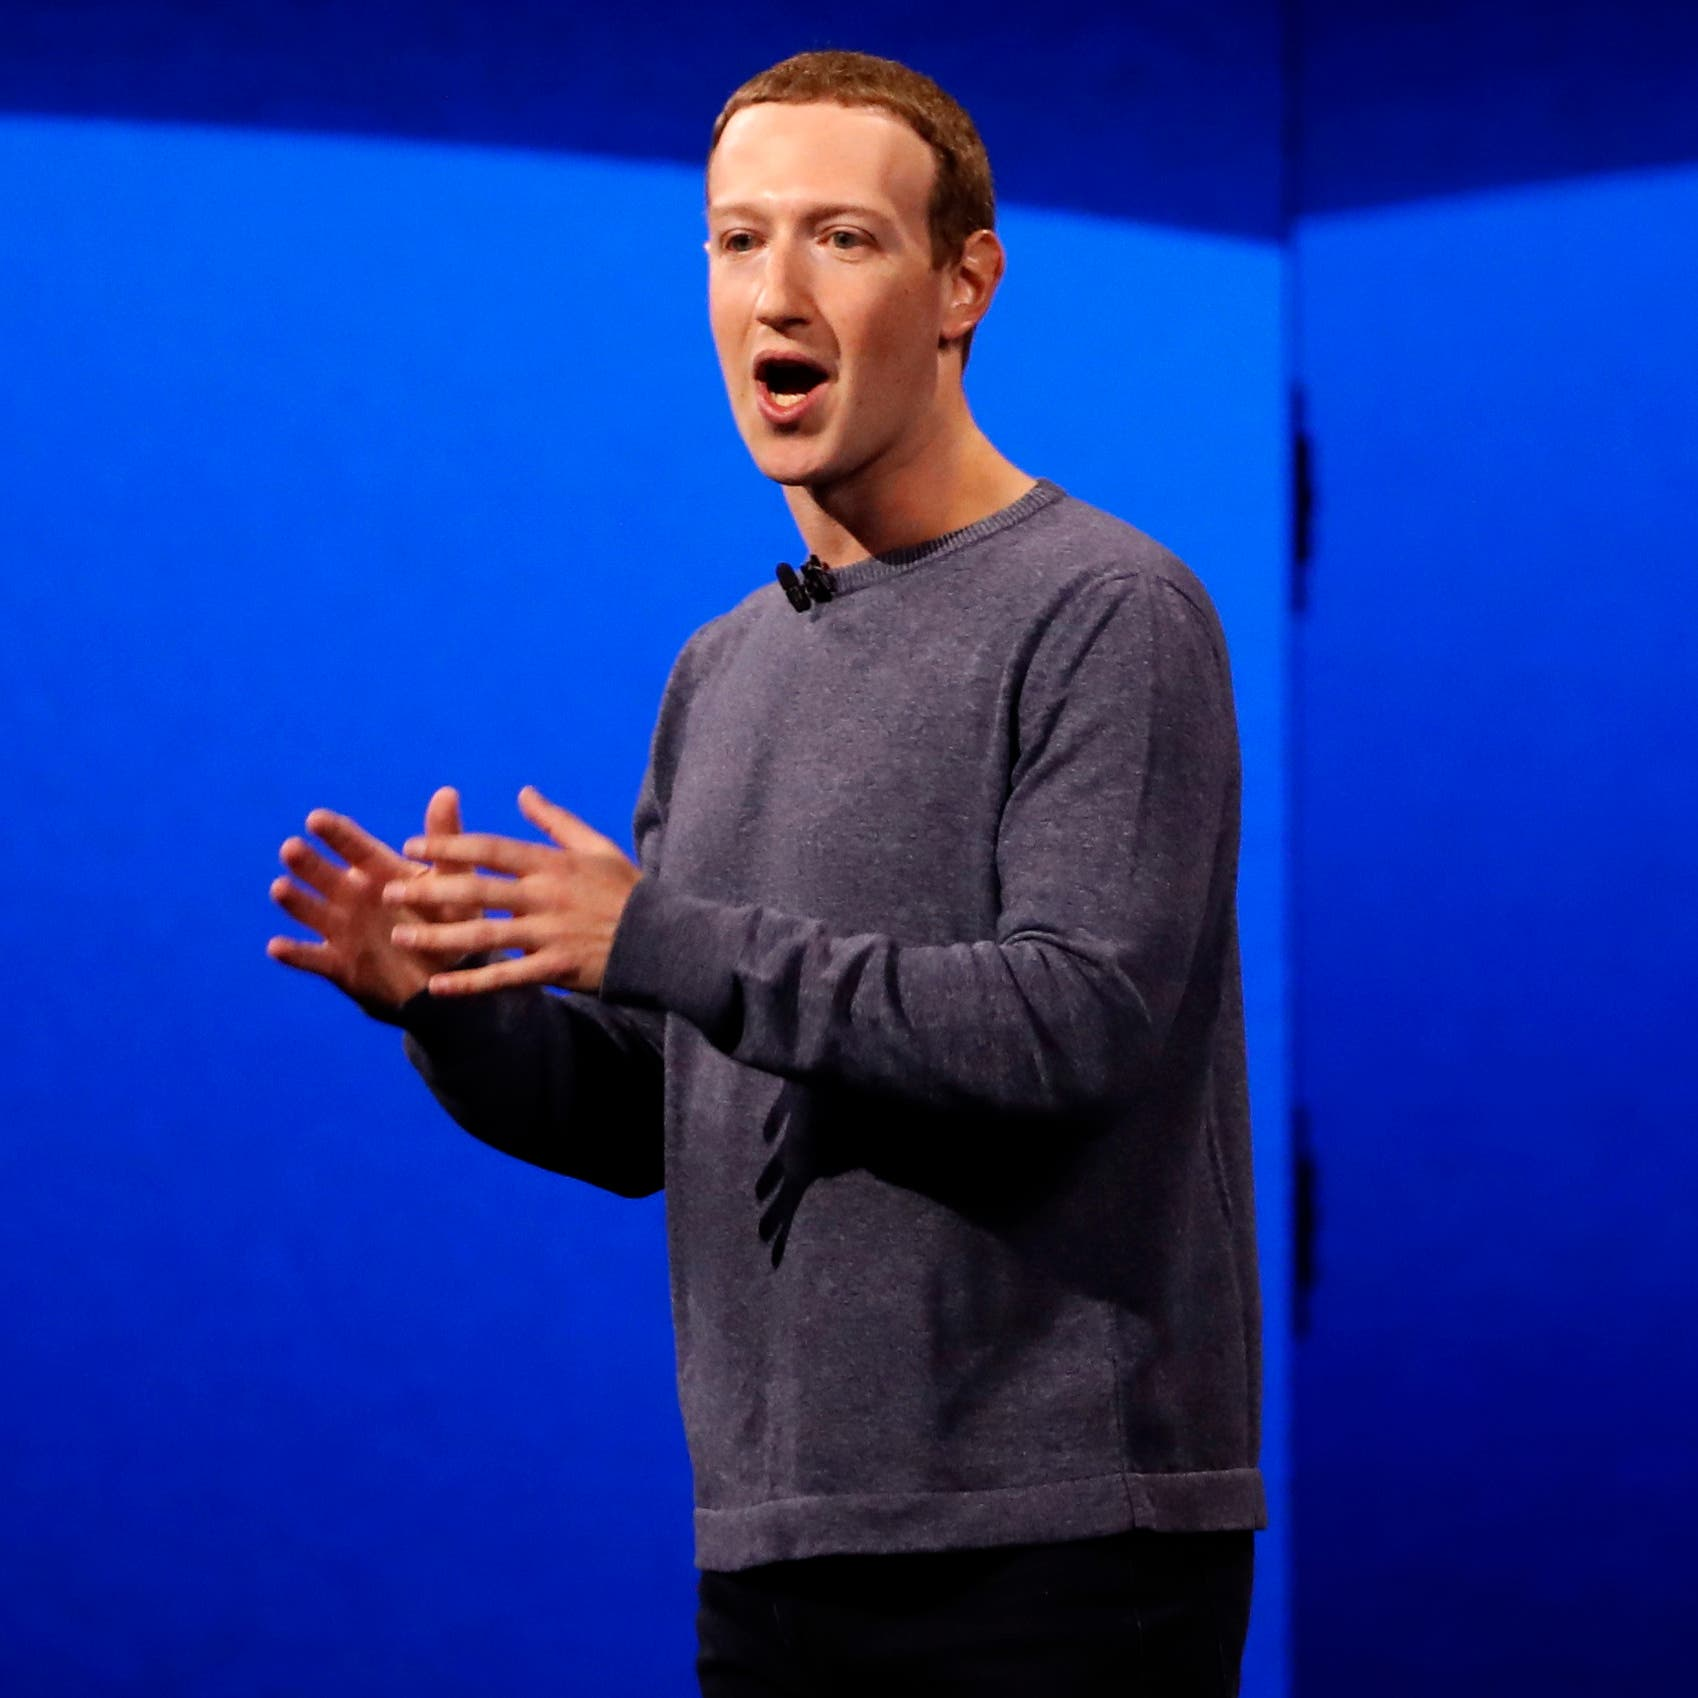 'Bring the metaverse to life': Zuckerberg reveals big plans for Facebook's future